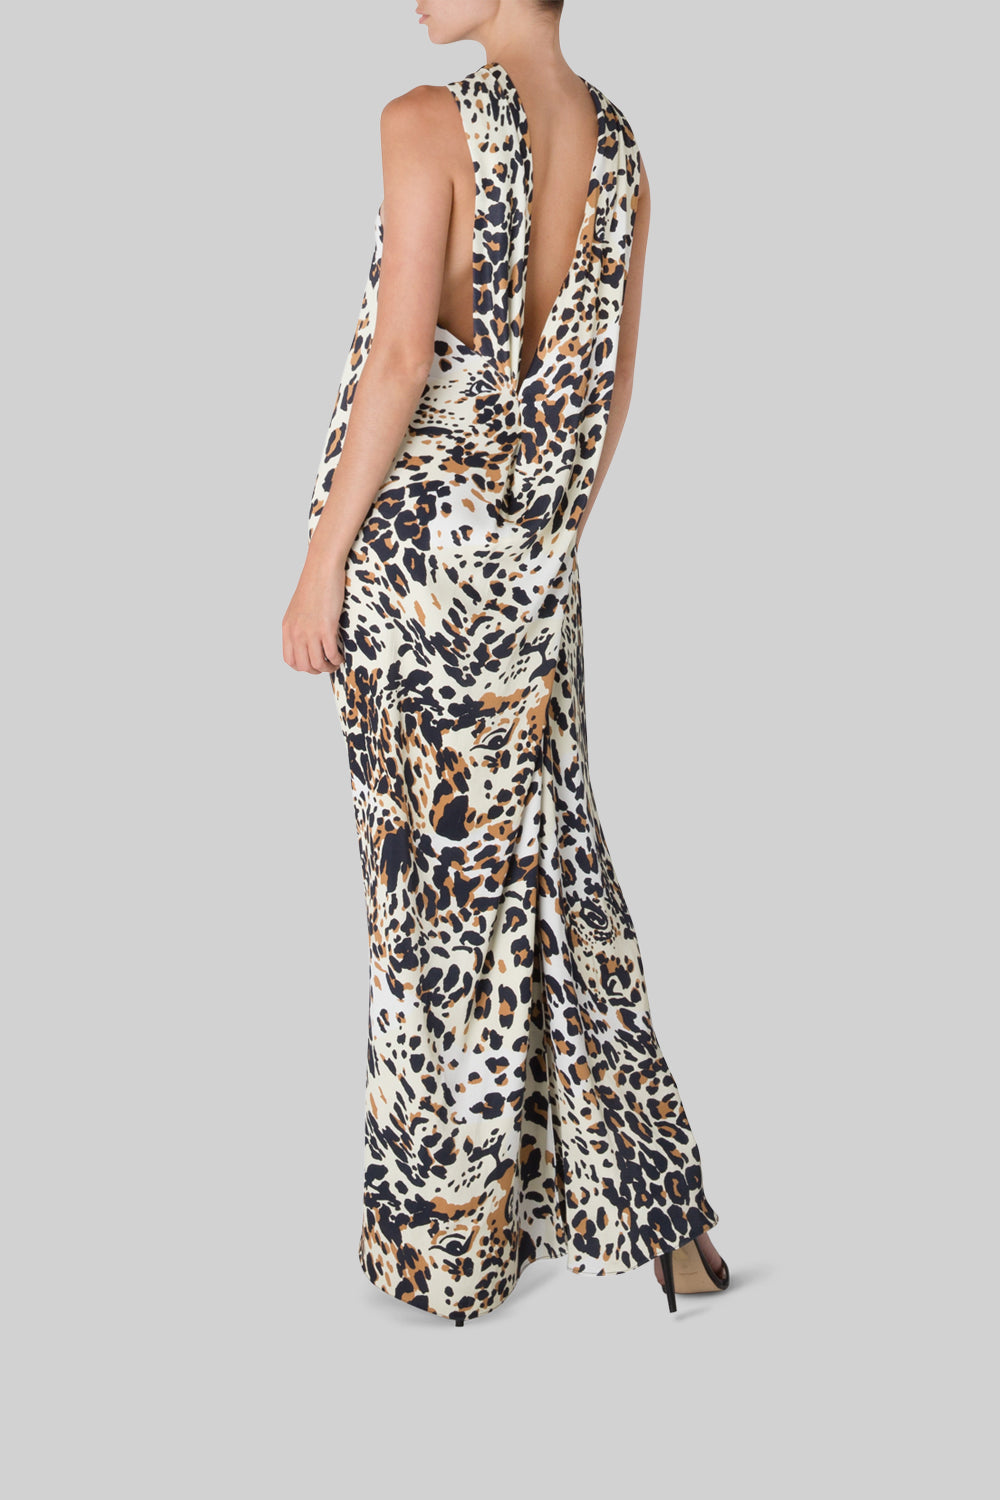 LA DOLCE VITA MAXI DRESS